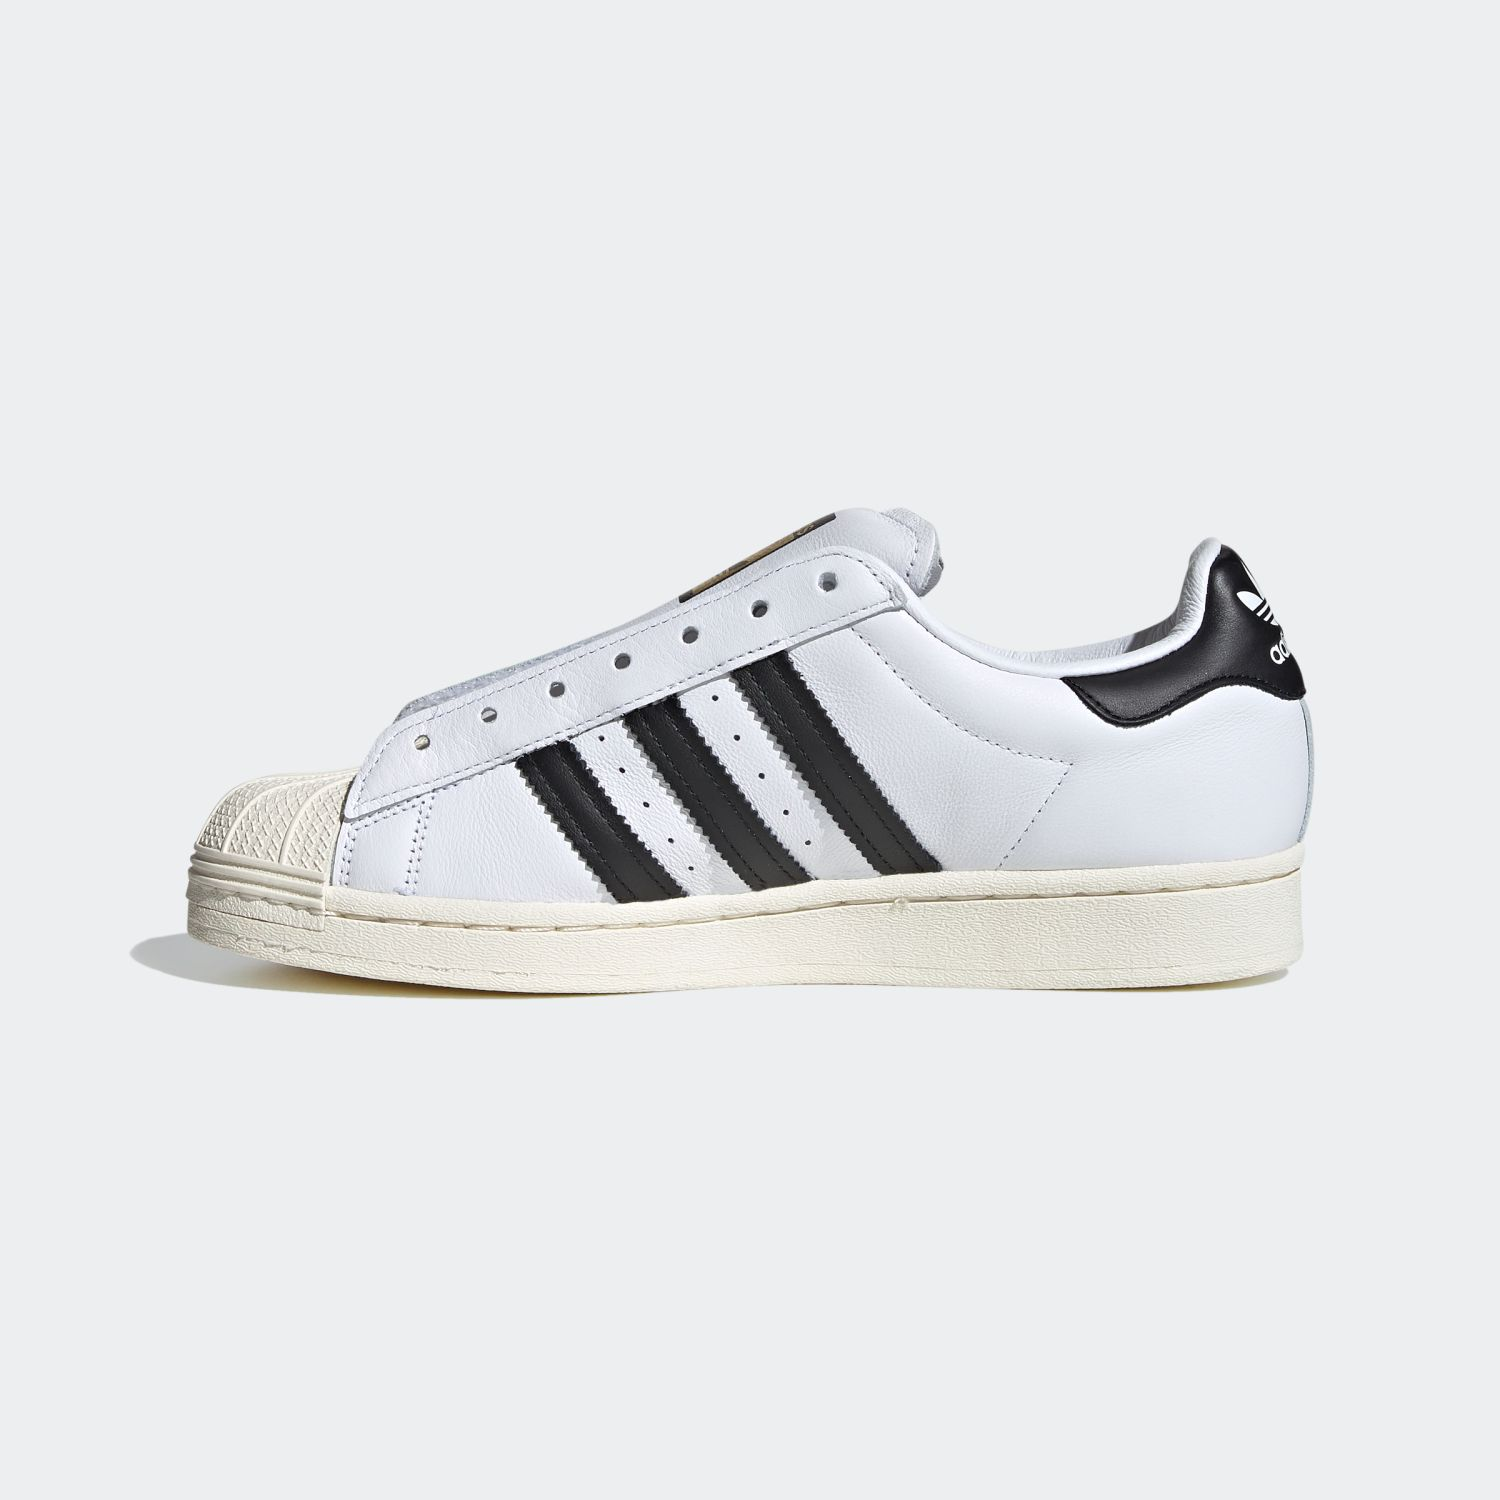 SUPERSTAR x Adidas Laceless White Black [2]